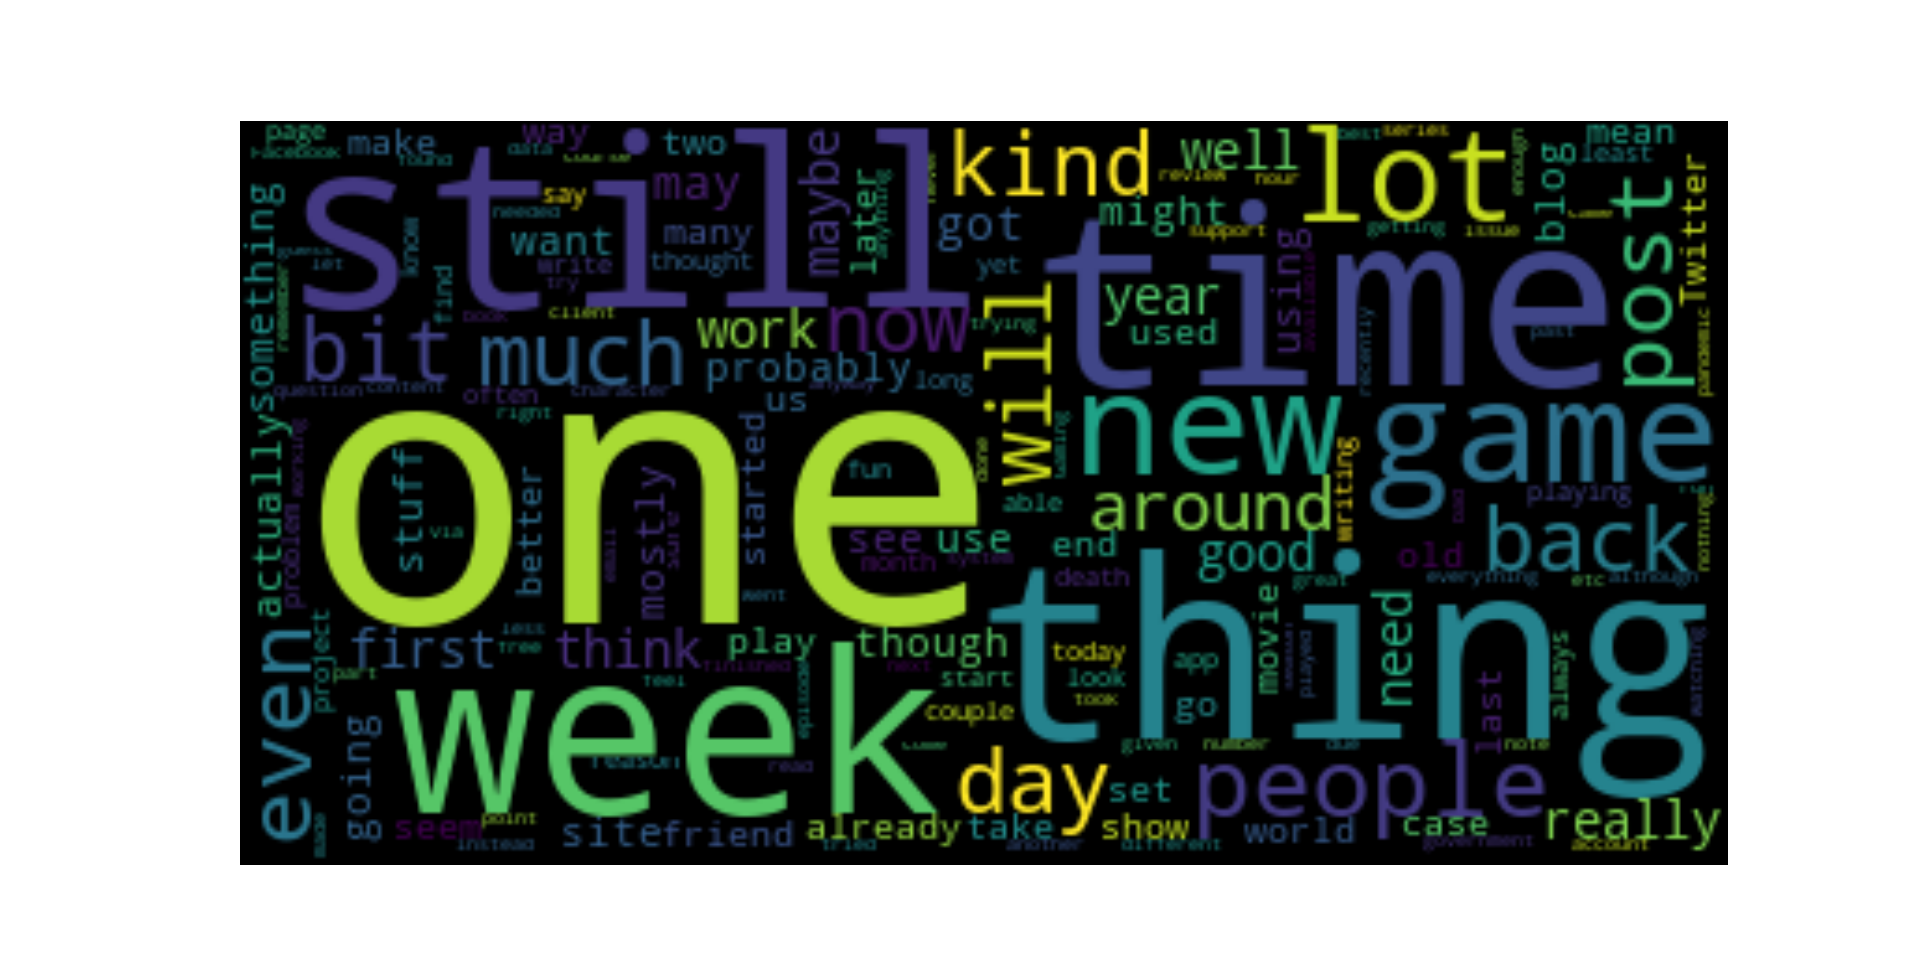 2020 blog post word cloud